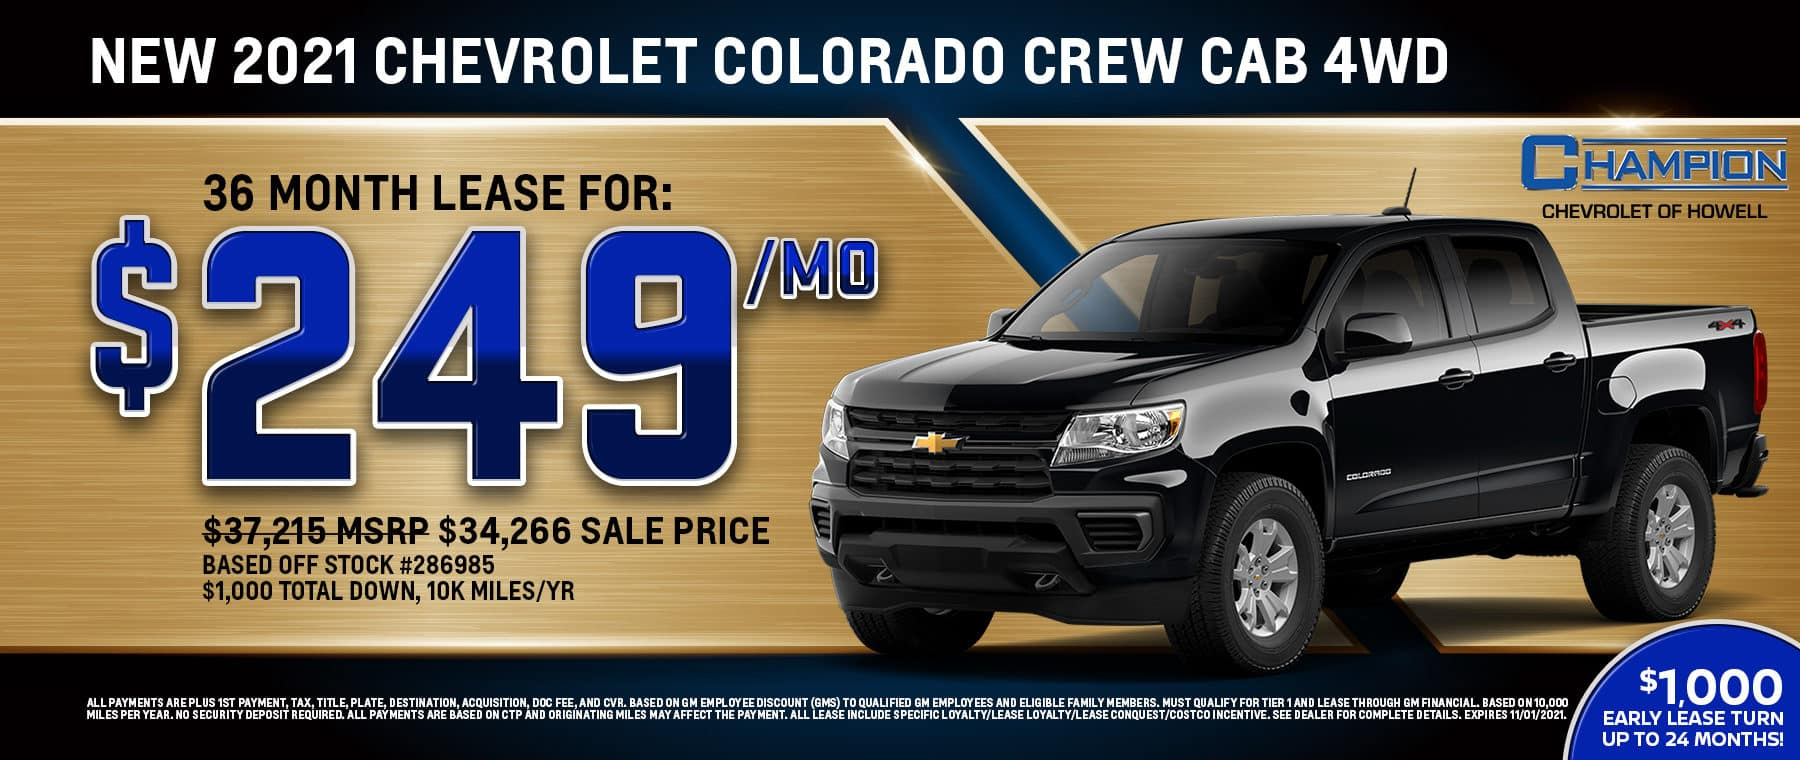 10_21_Champion_Howell_Chevy_1800x760_2021_Colorado_CC_4WD_web_banner